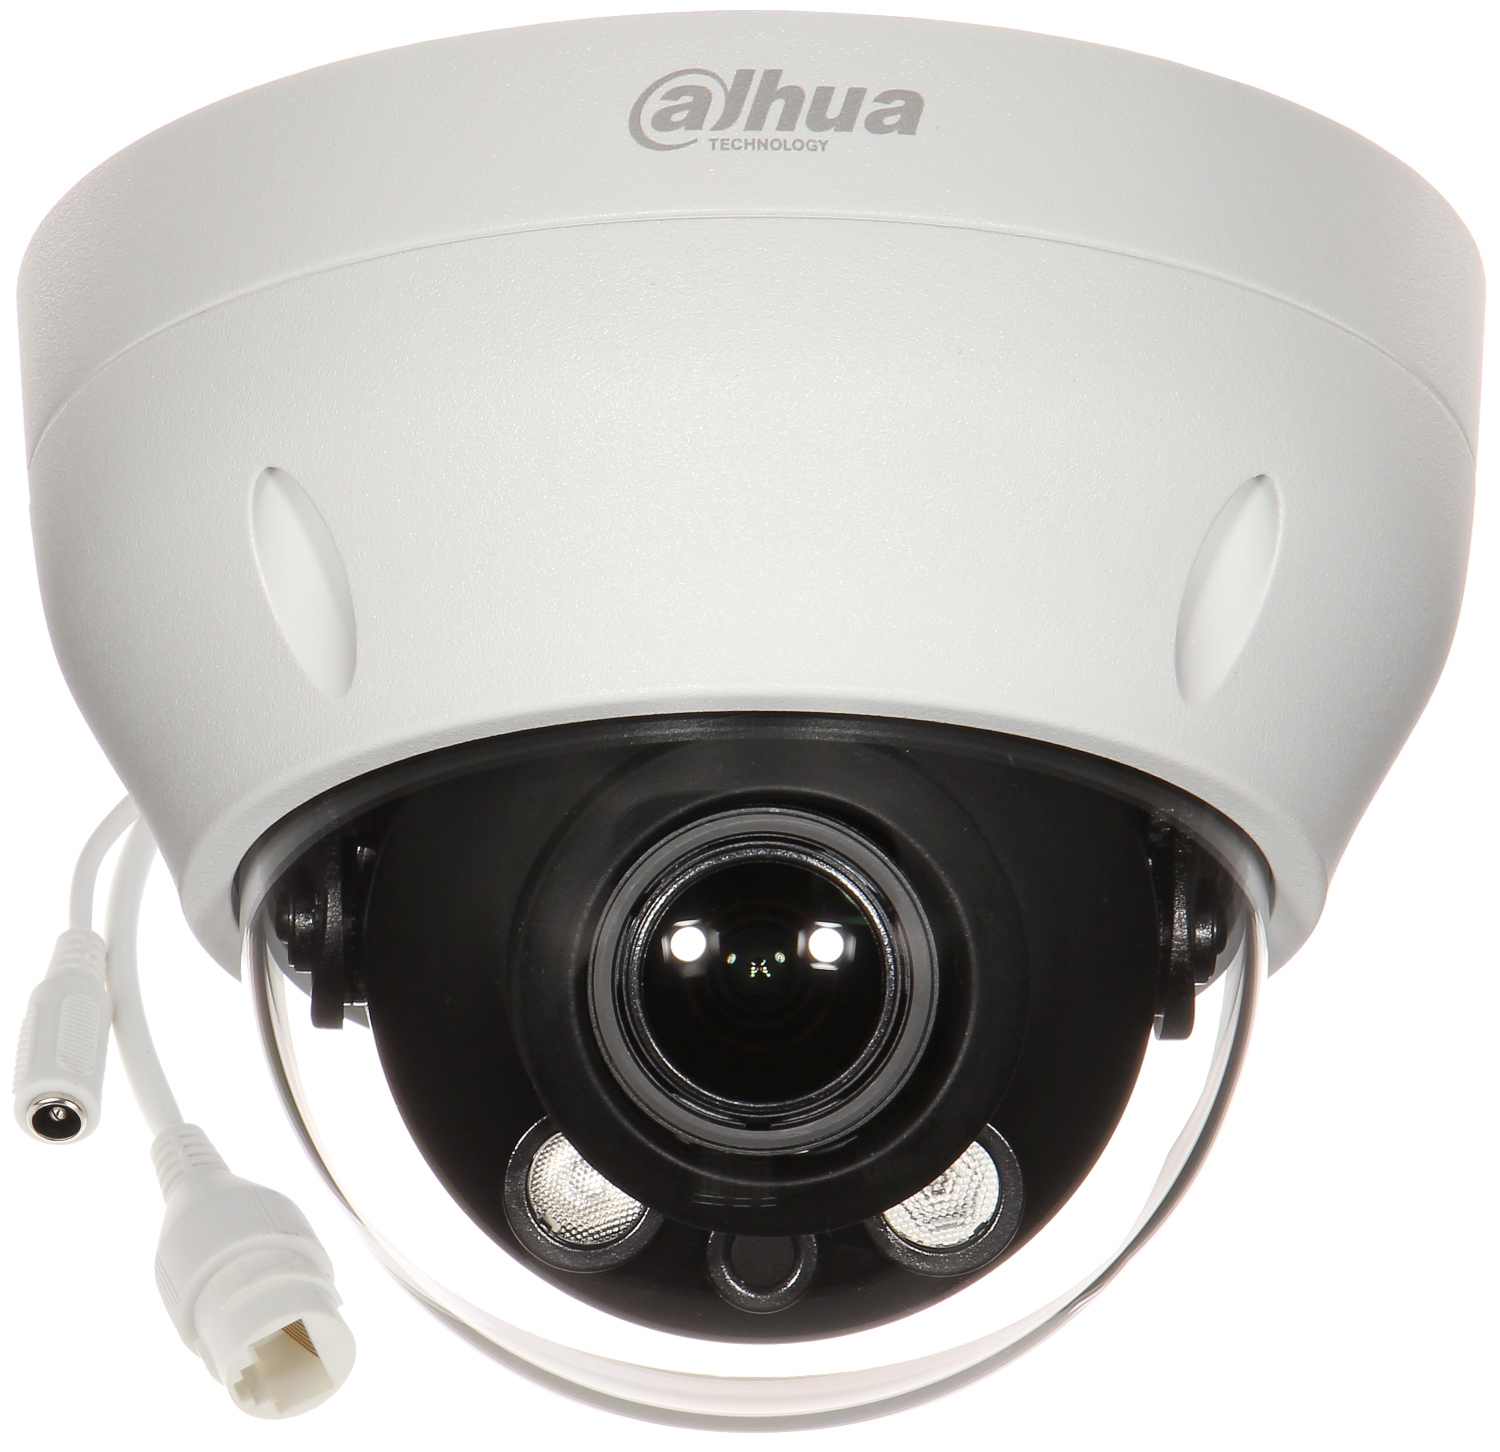 Εικόνα της IPC-CD2C40-ZS-2812 4MP IR Mini-Dome Network Camera 2.8~12mm varifocal lens Dahua